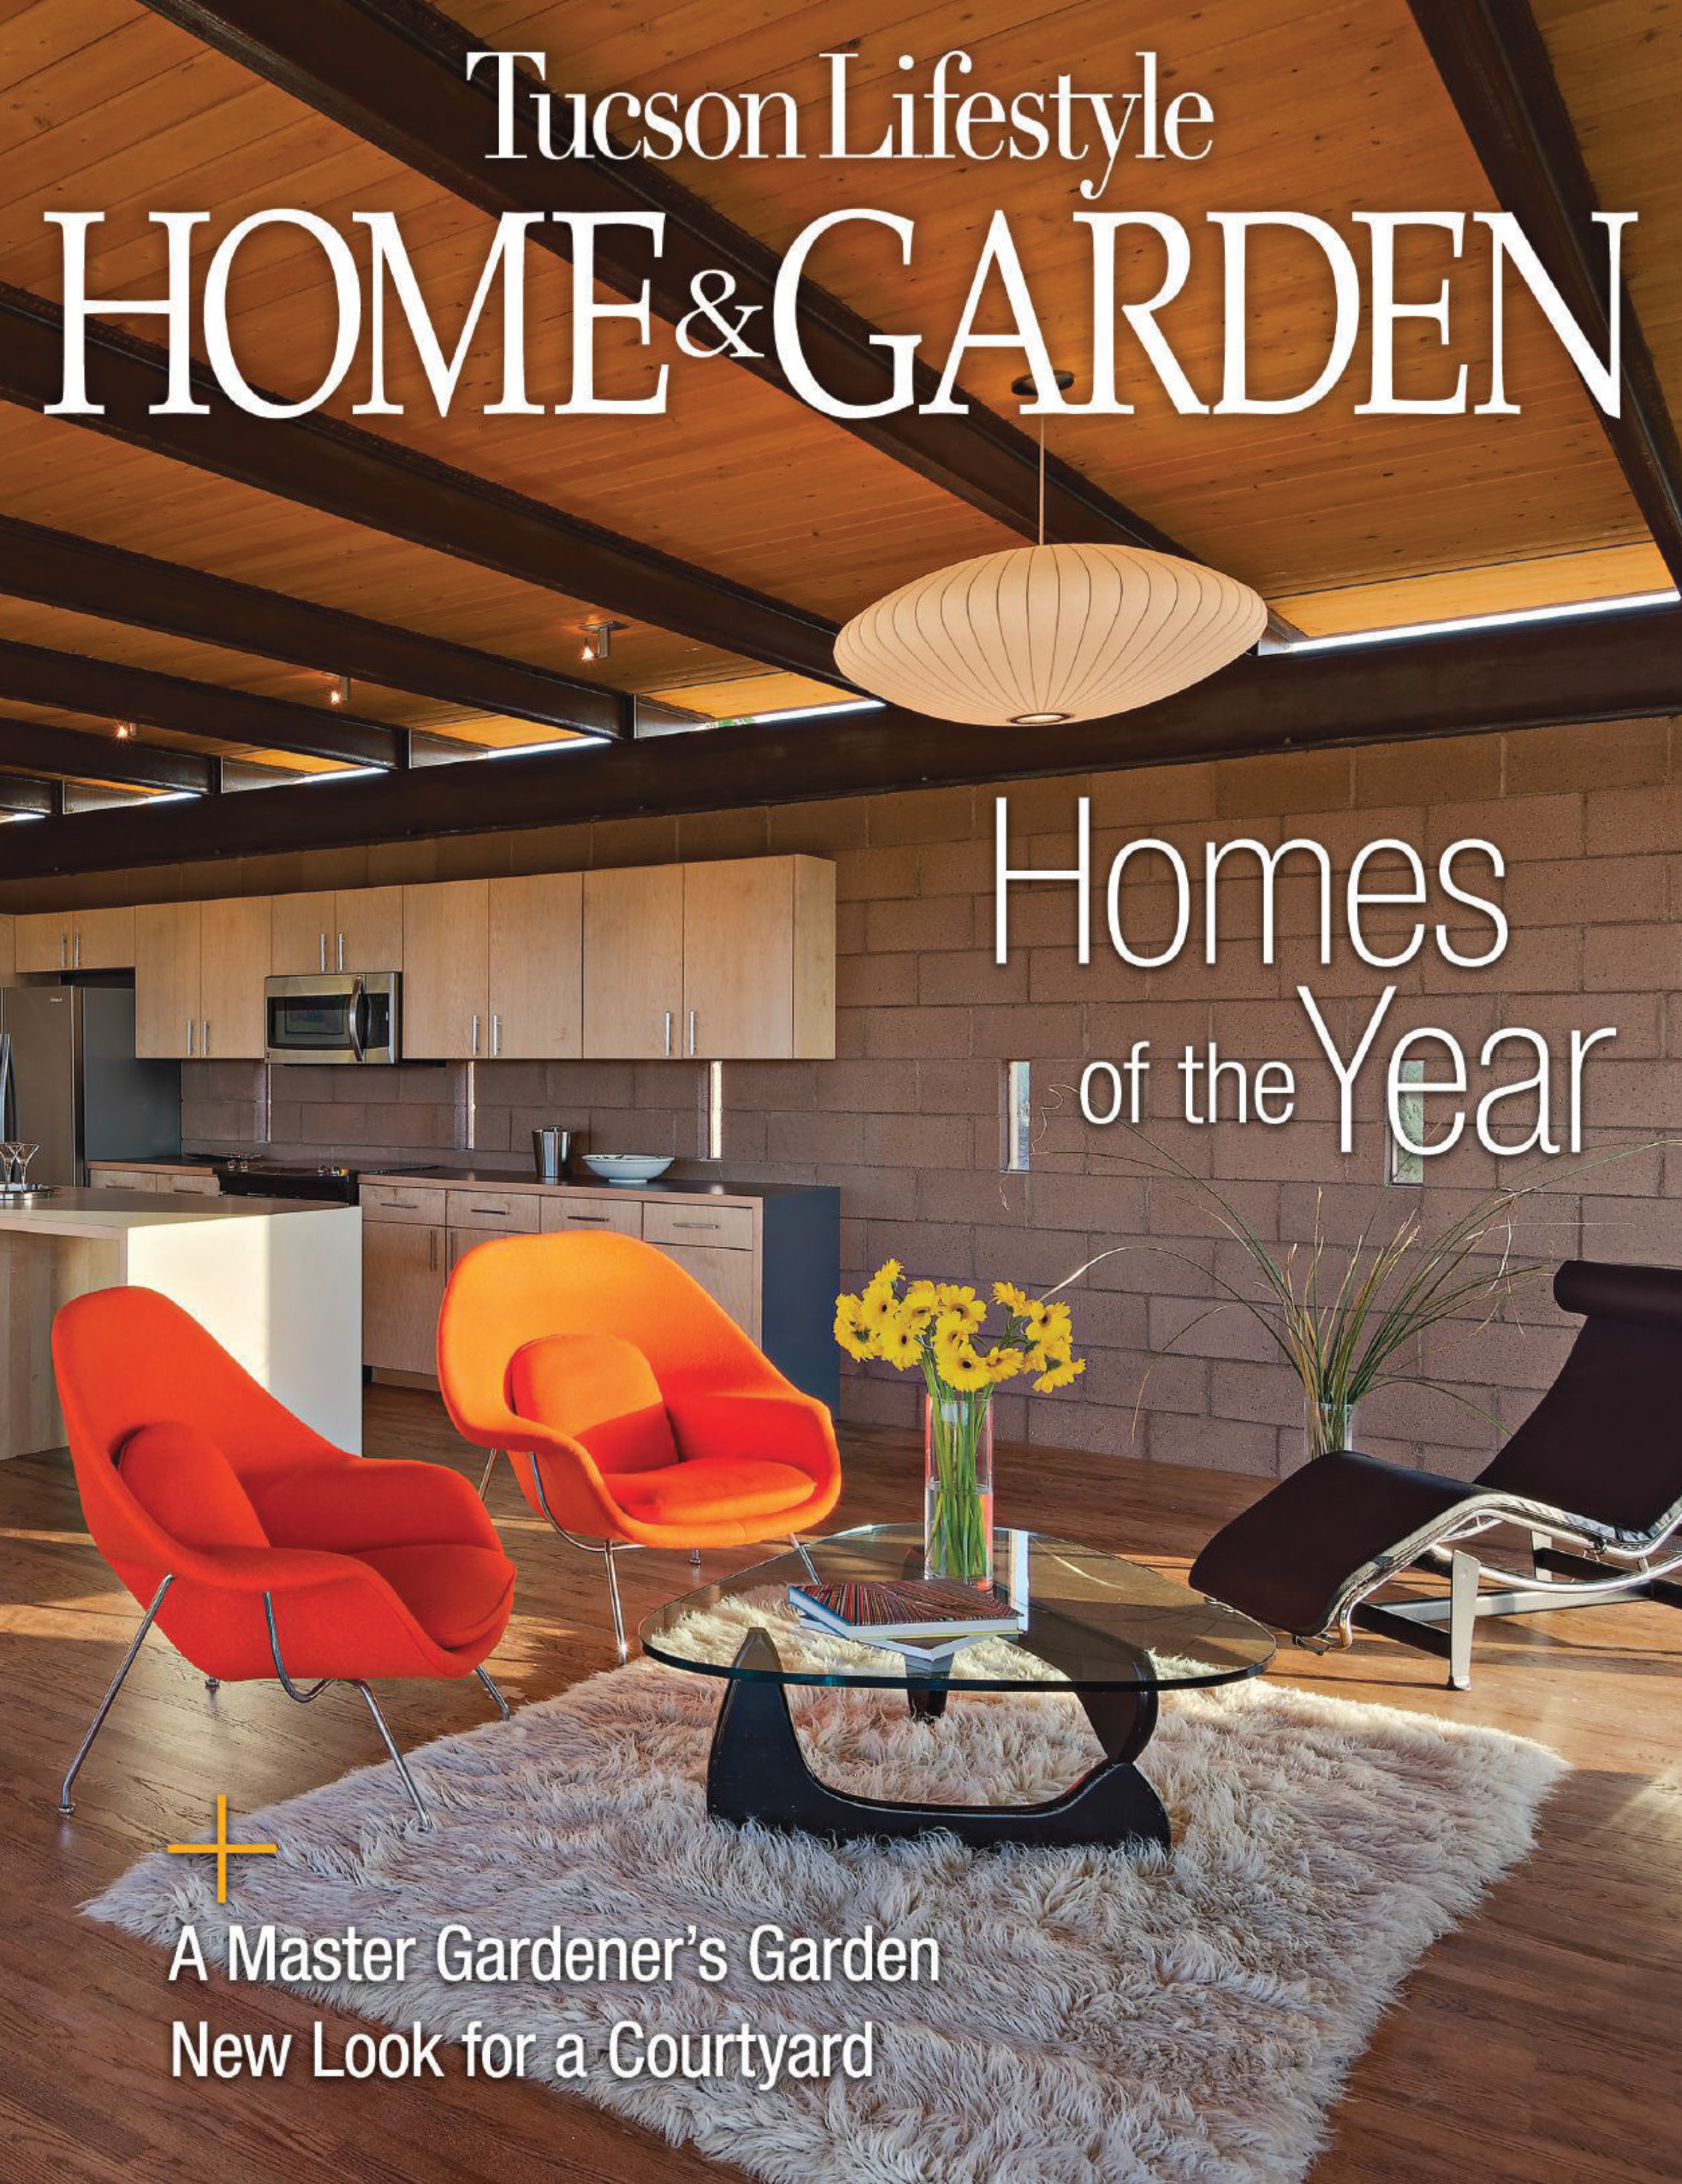 TLHG homes of the year 2015 cover.jpg